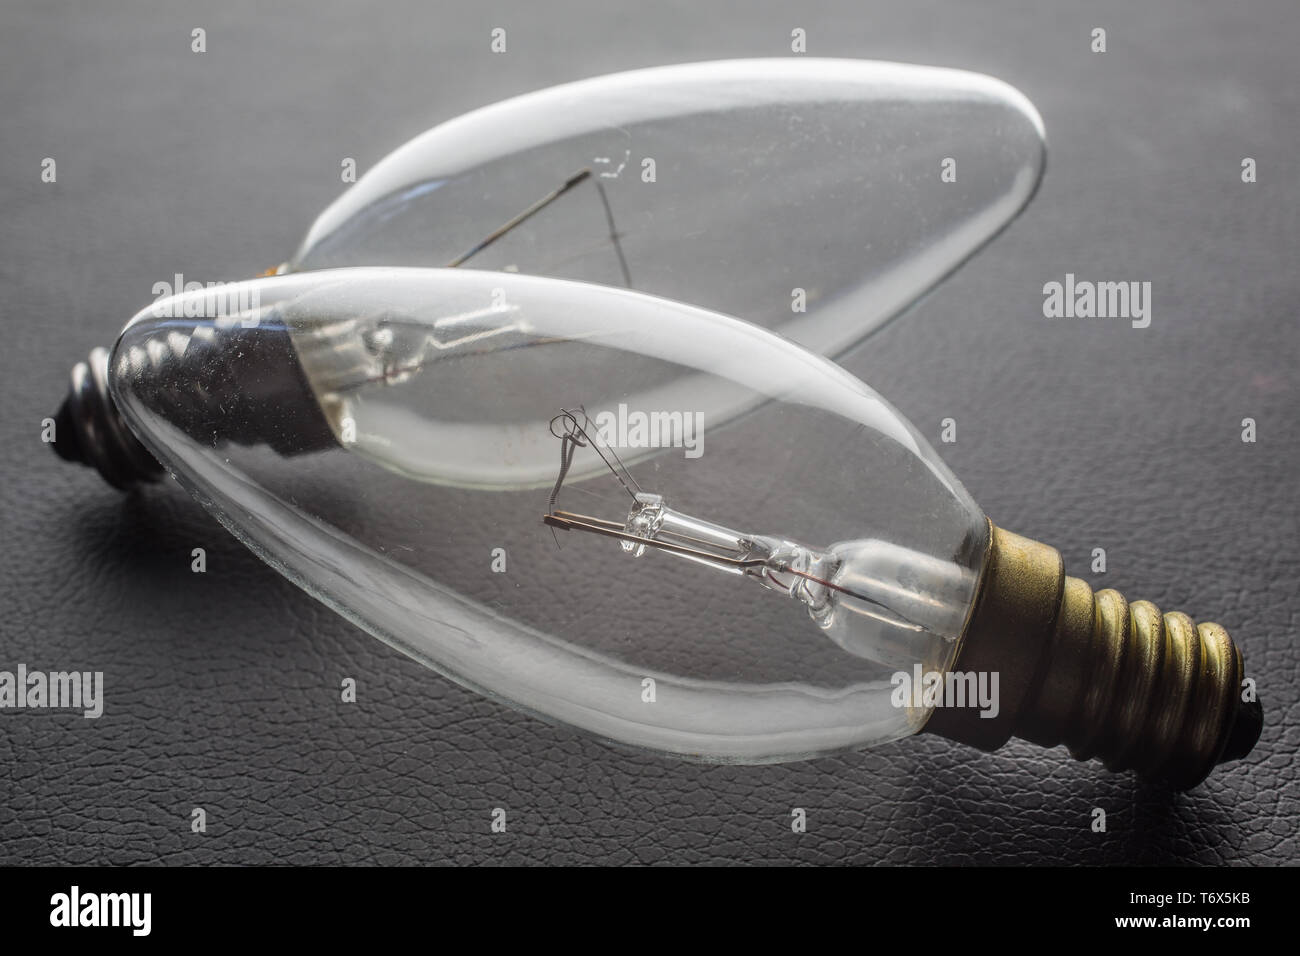 elongated bulbs - Stock Image